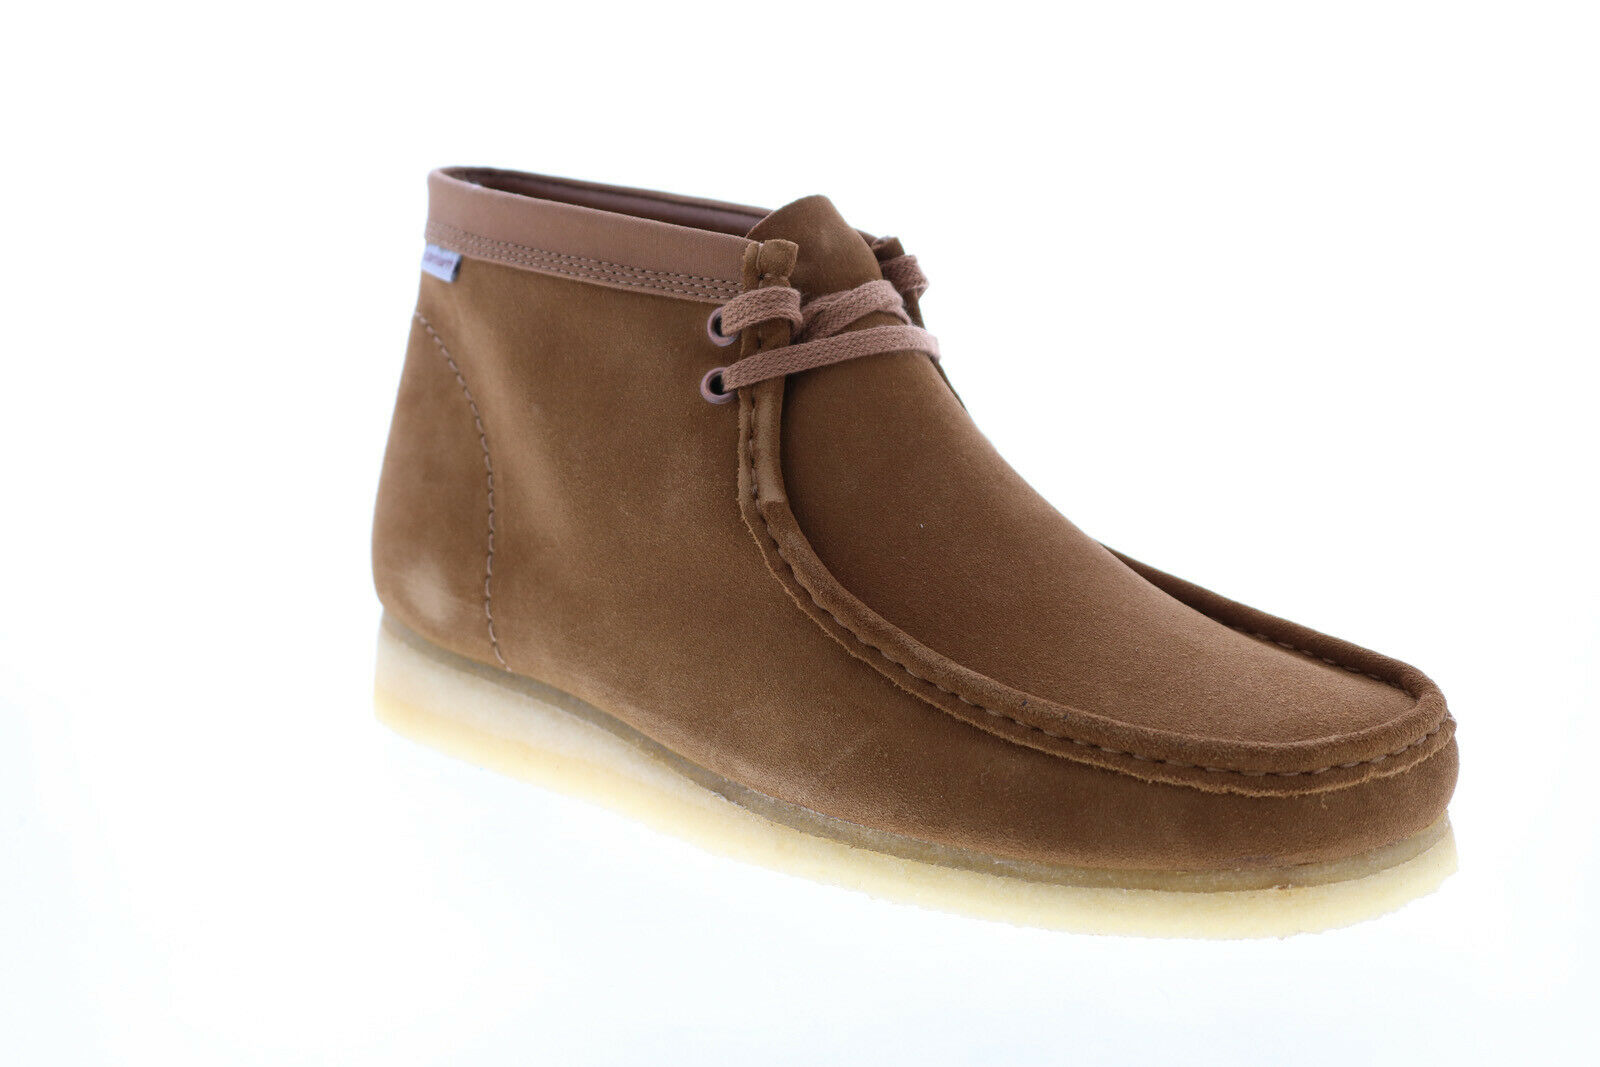 Clarks Wallabee Boot 26146193 Mens Brown Suede Lace Up Chukkas Boots